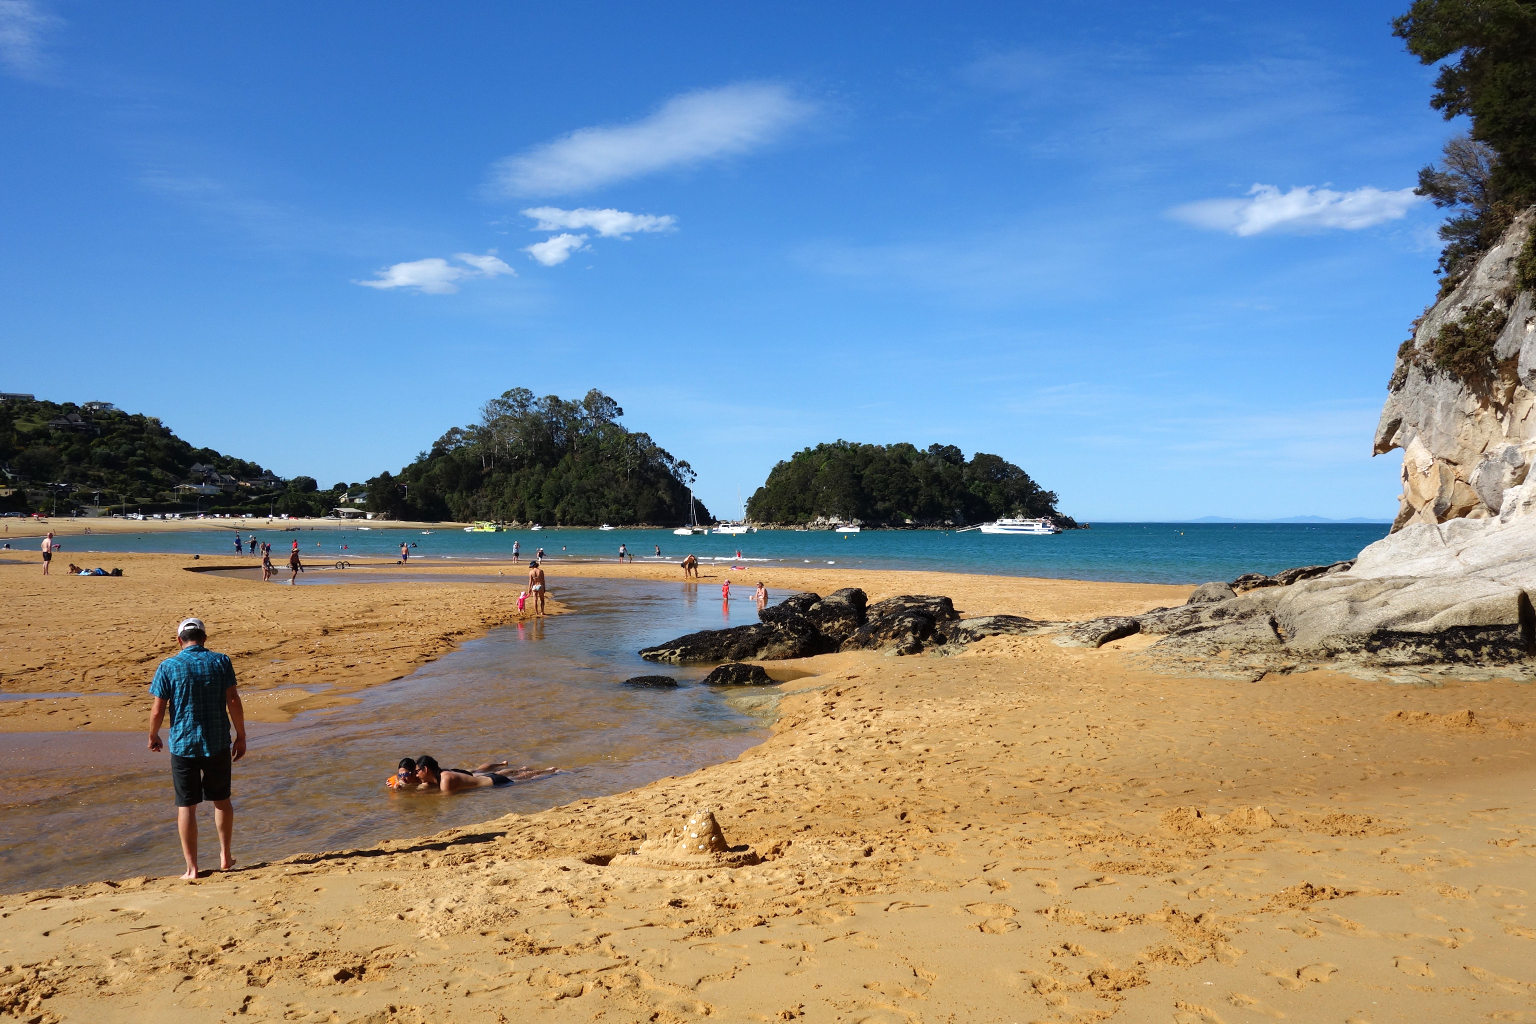 Kaiteriteri beach in New Zealand